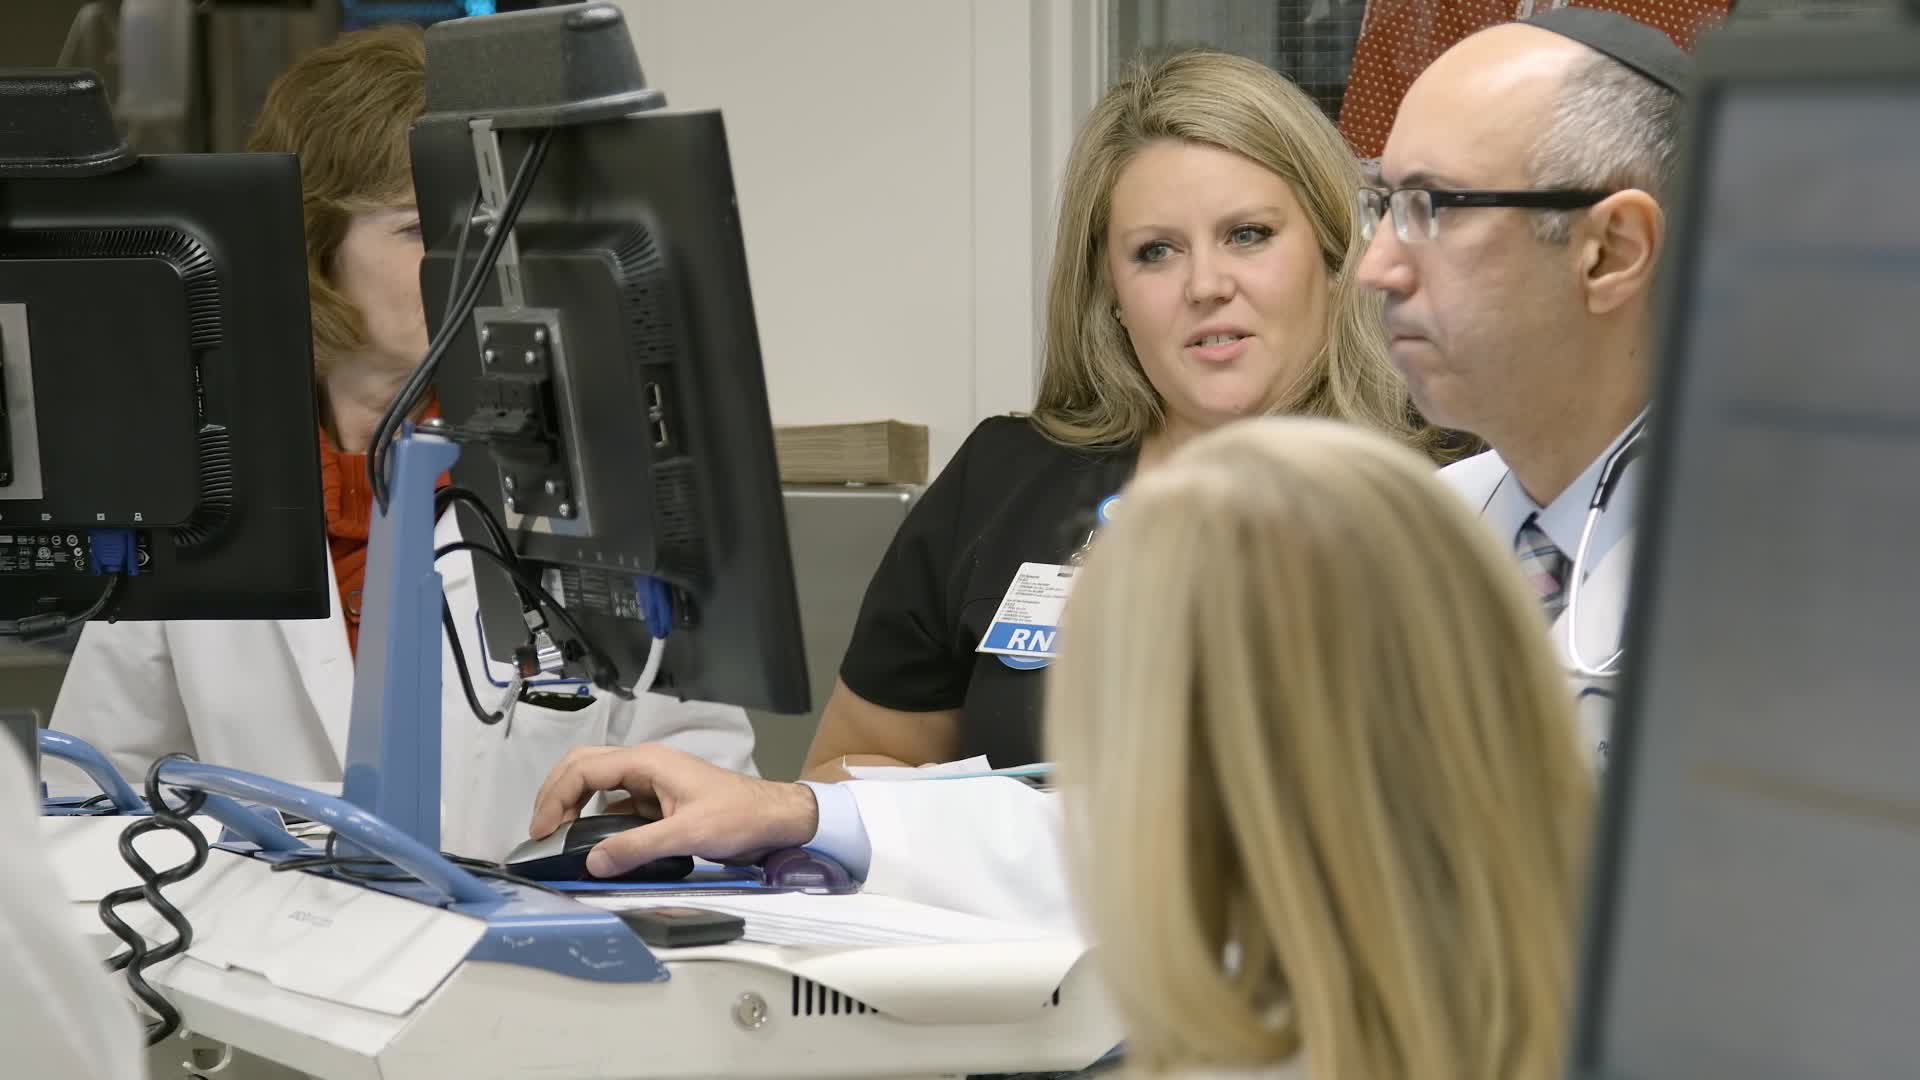 Doctors and nurses huddle around a computer